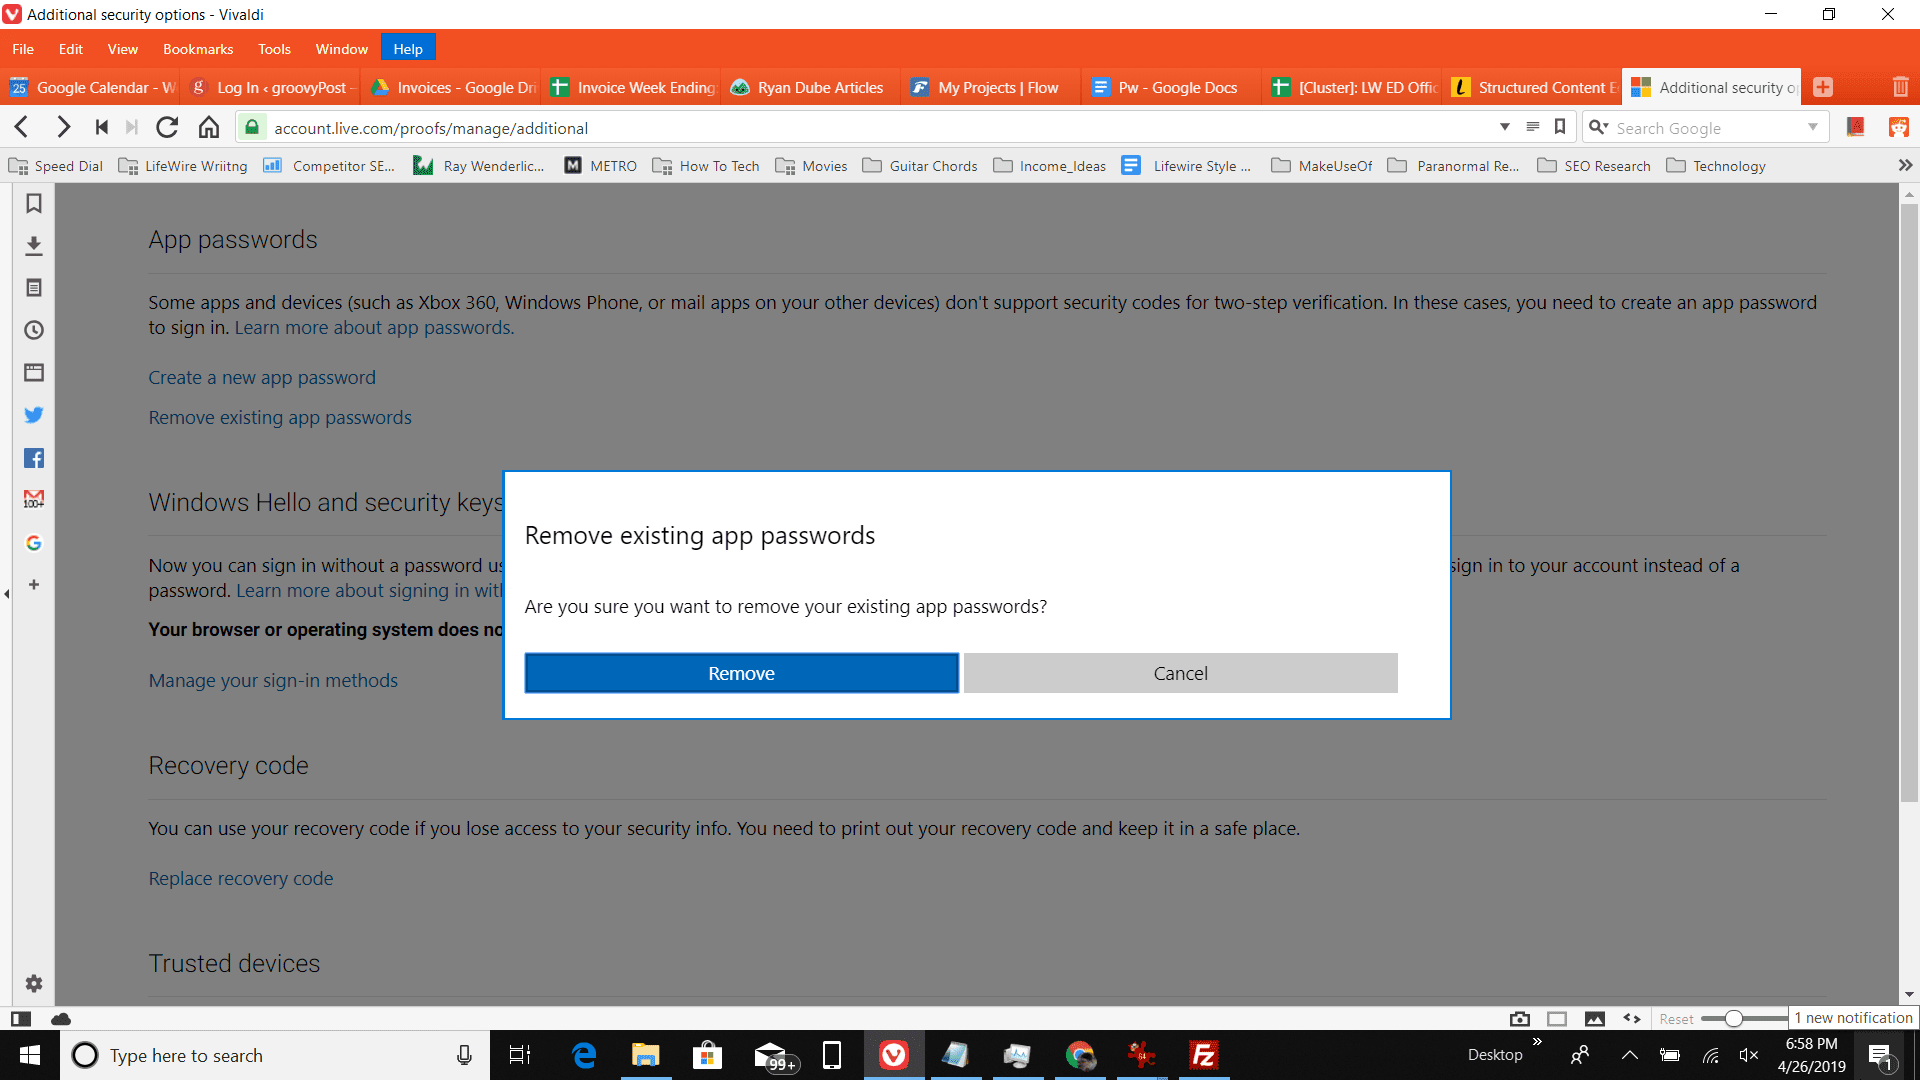 How to Create App Passwords for Outlook com For Easier Sign-in